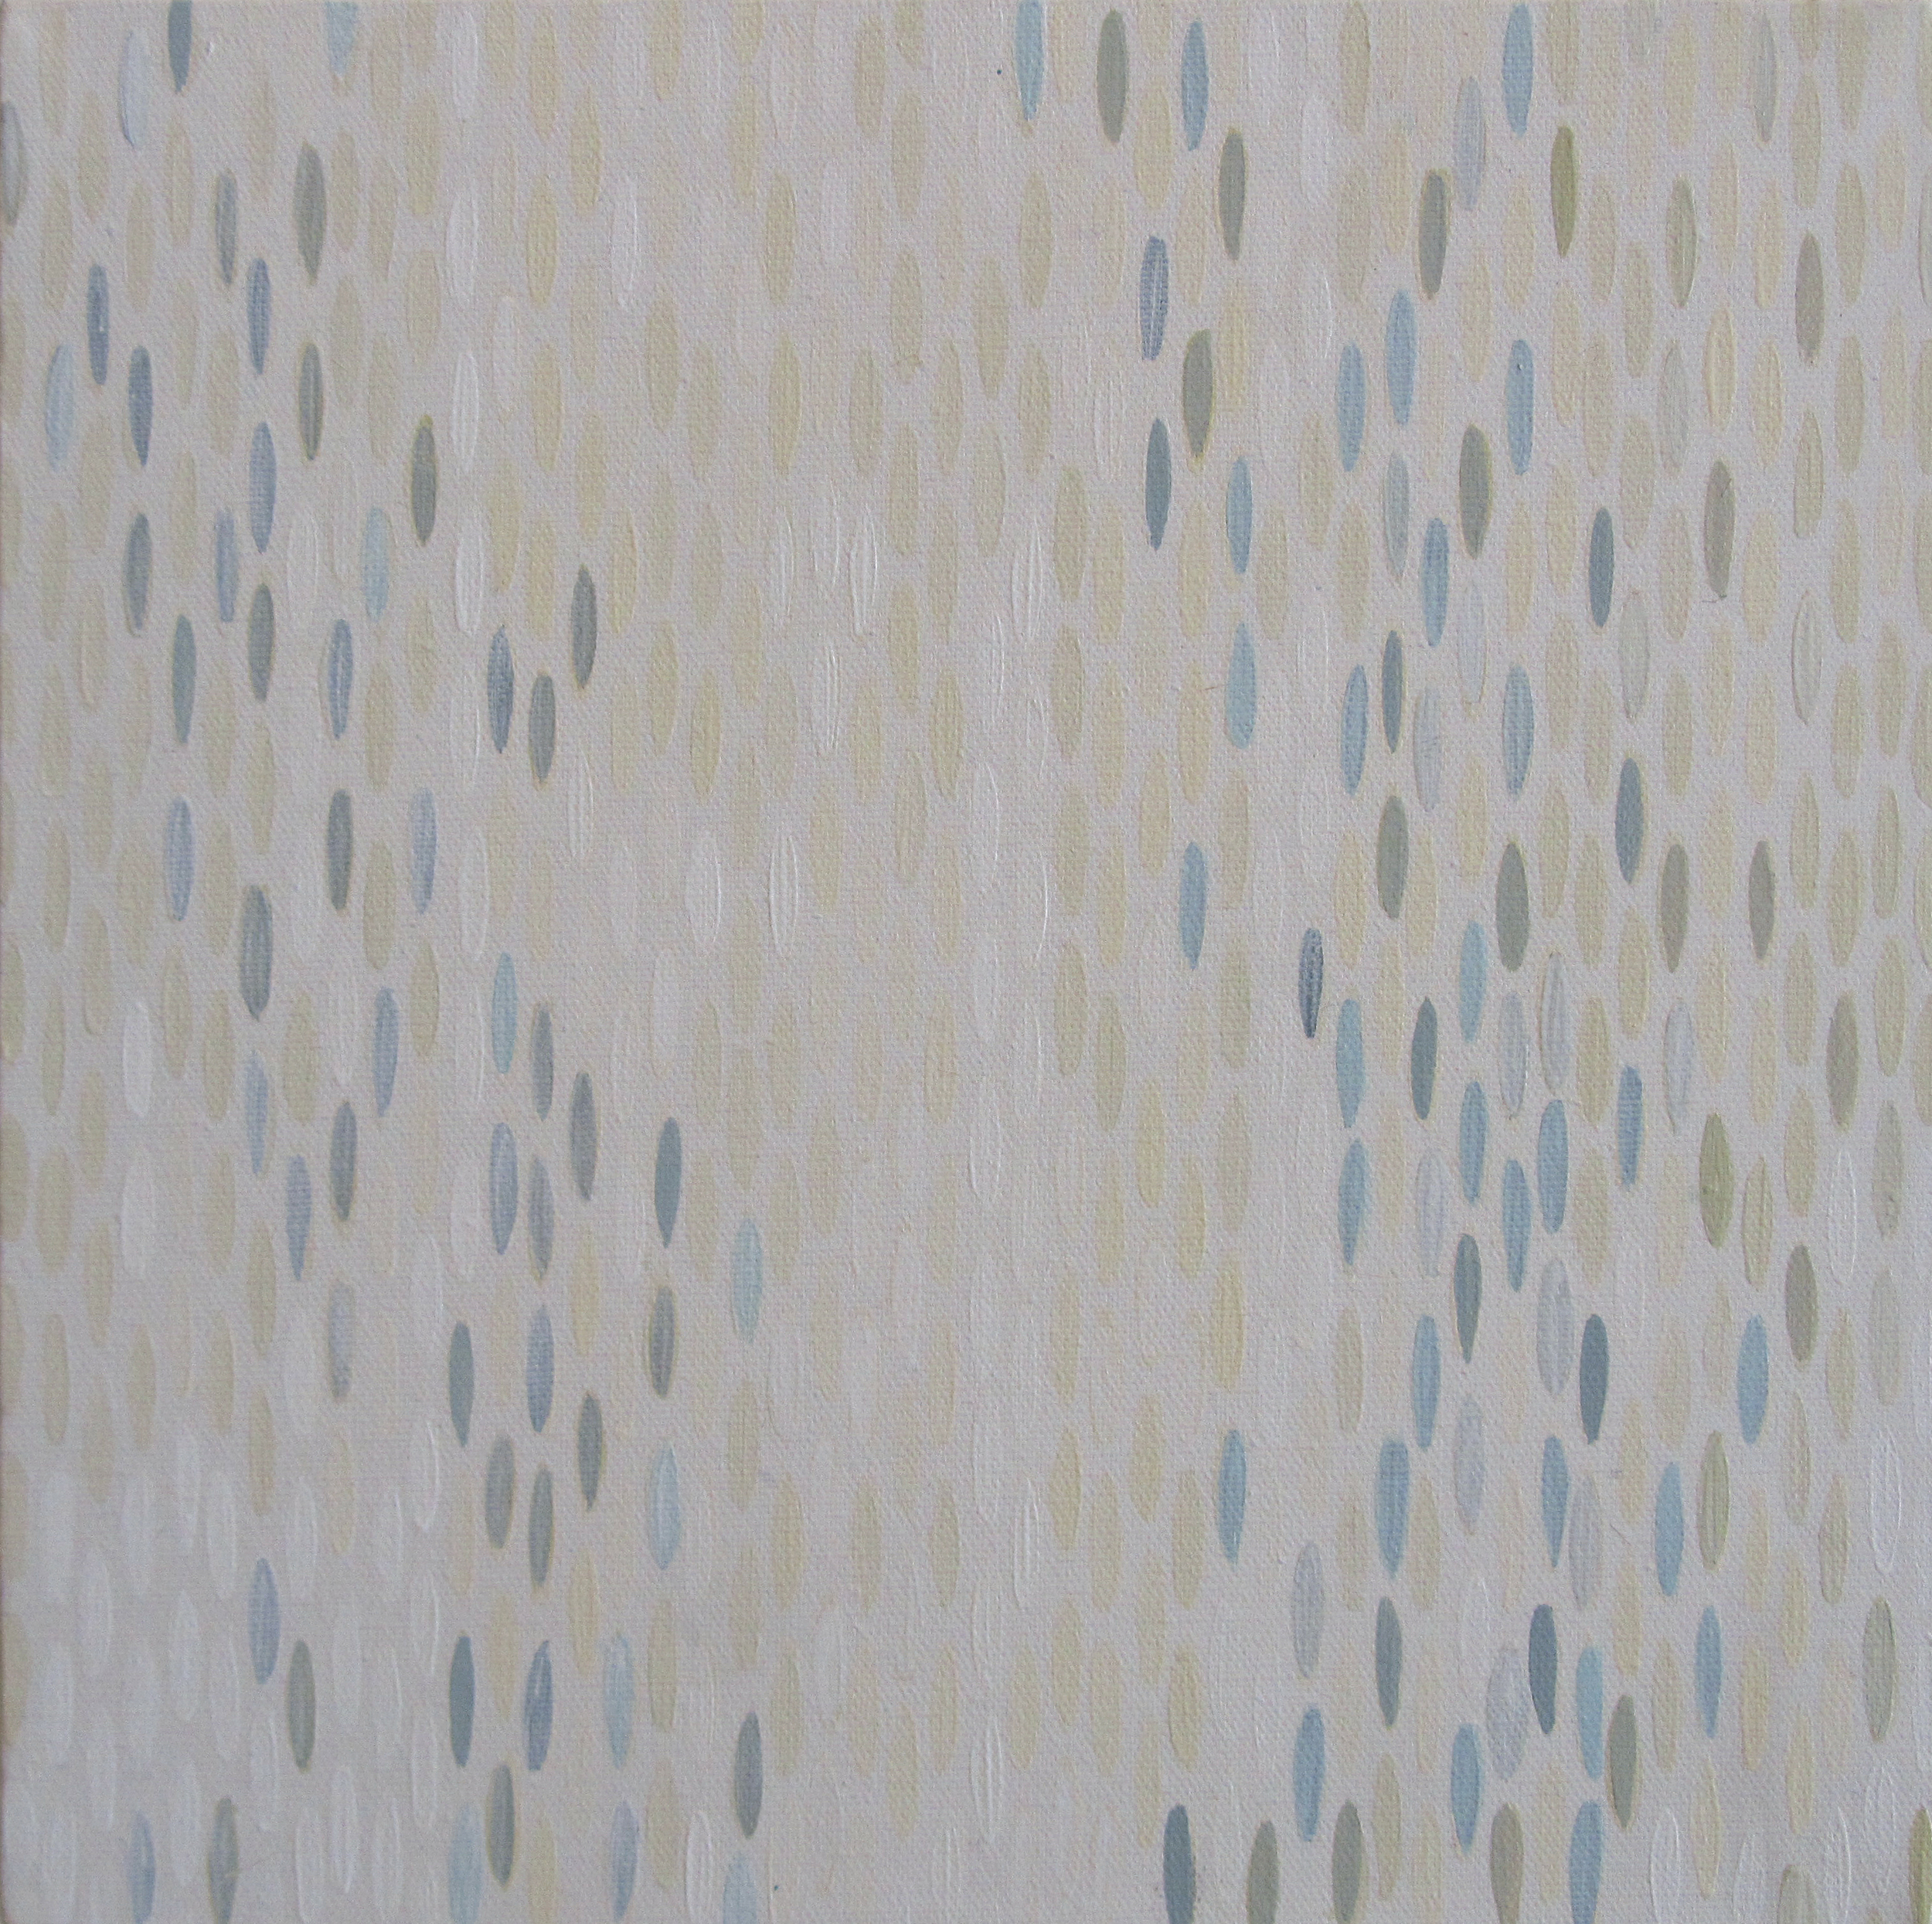 "Weiss Lust (Greys), 2012, acrylic + alum-silver on canvas, 10""x10"" (≈25x25cm)"